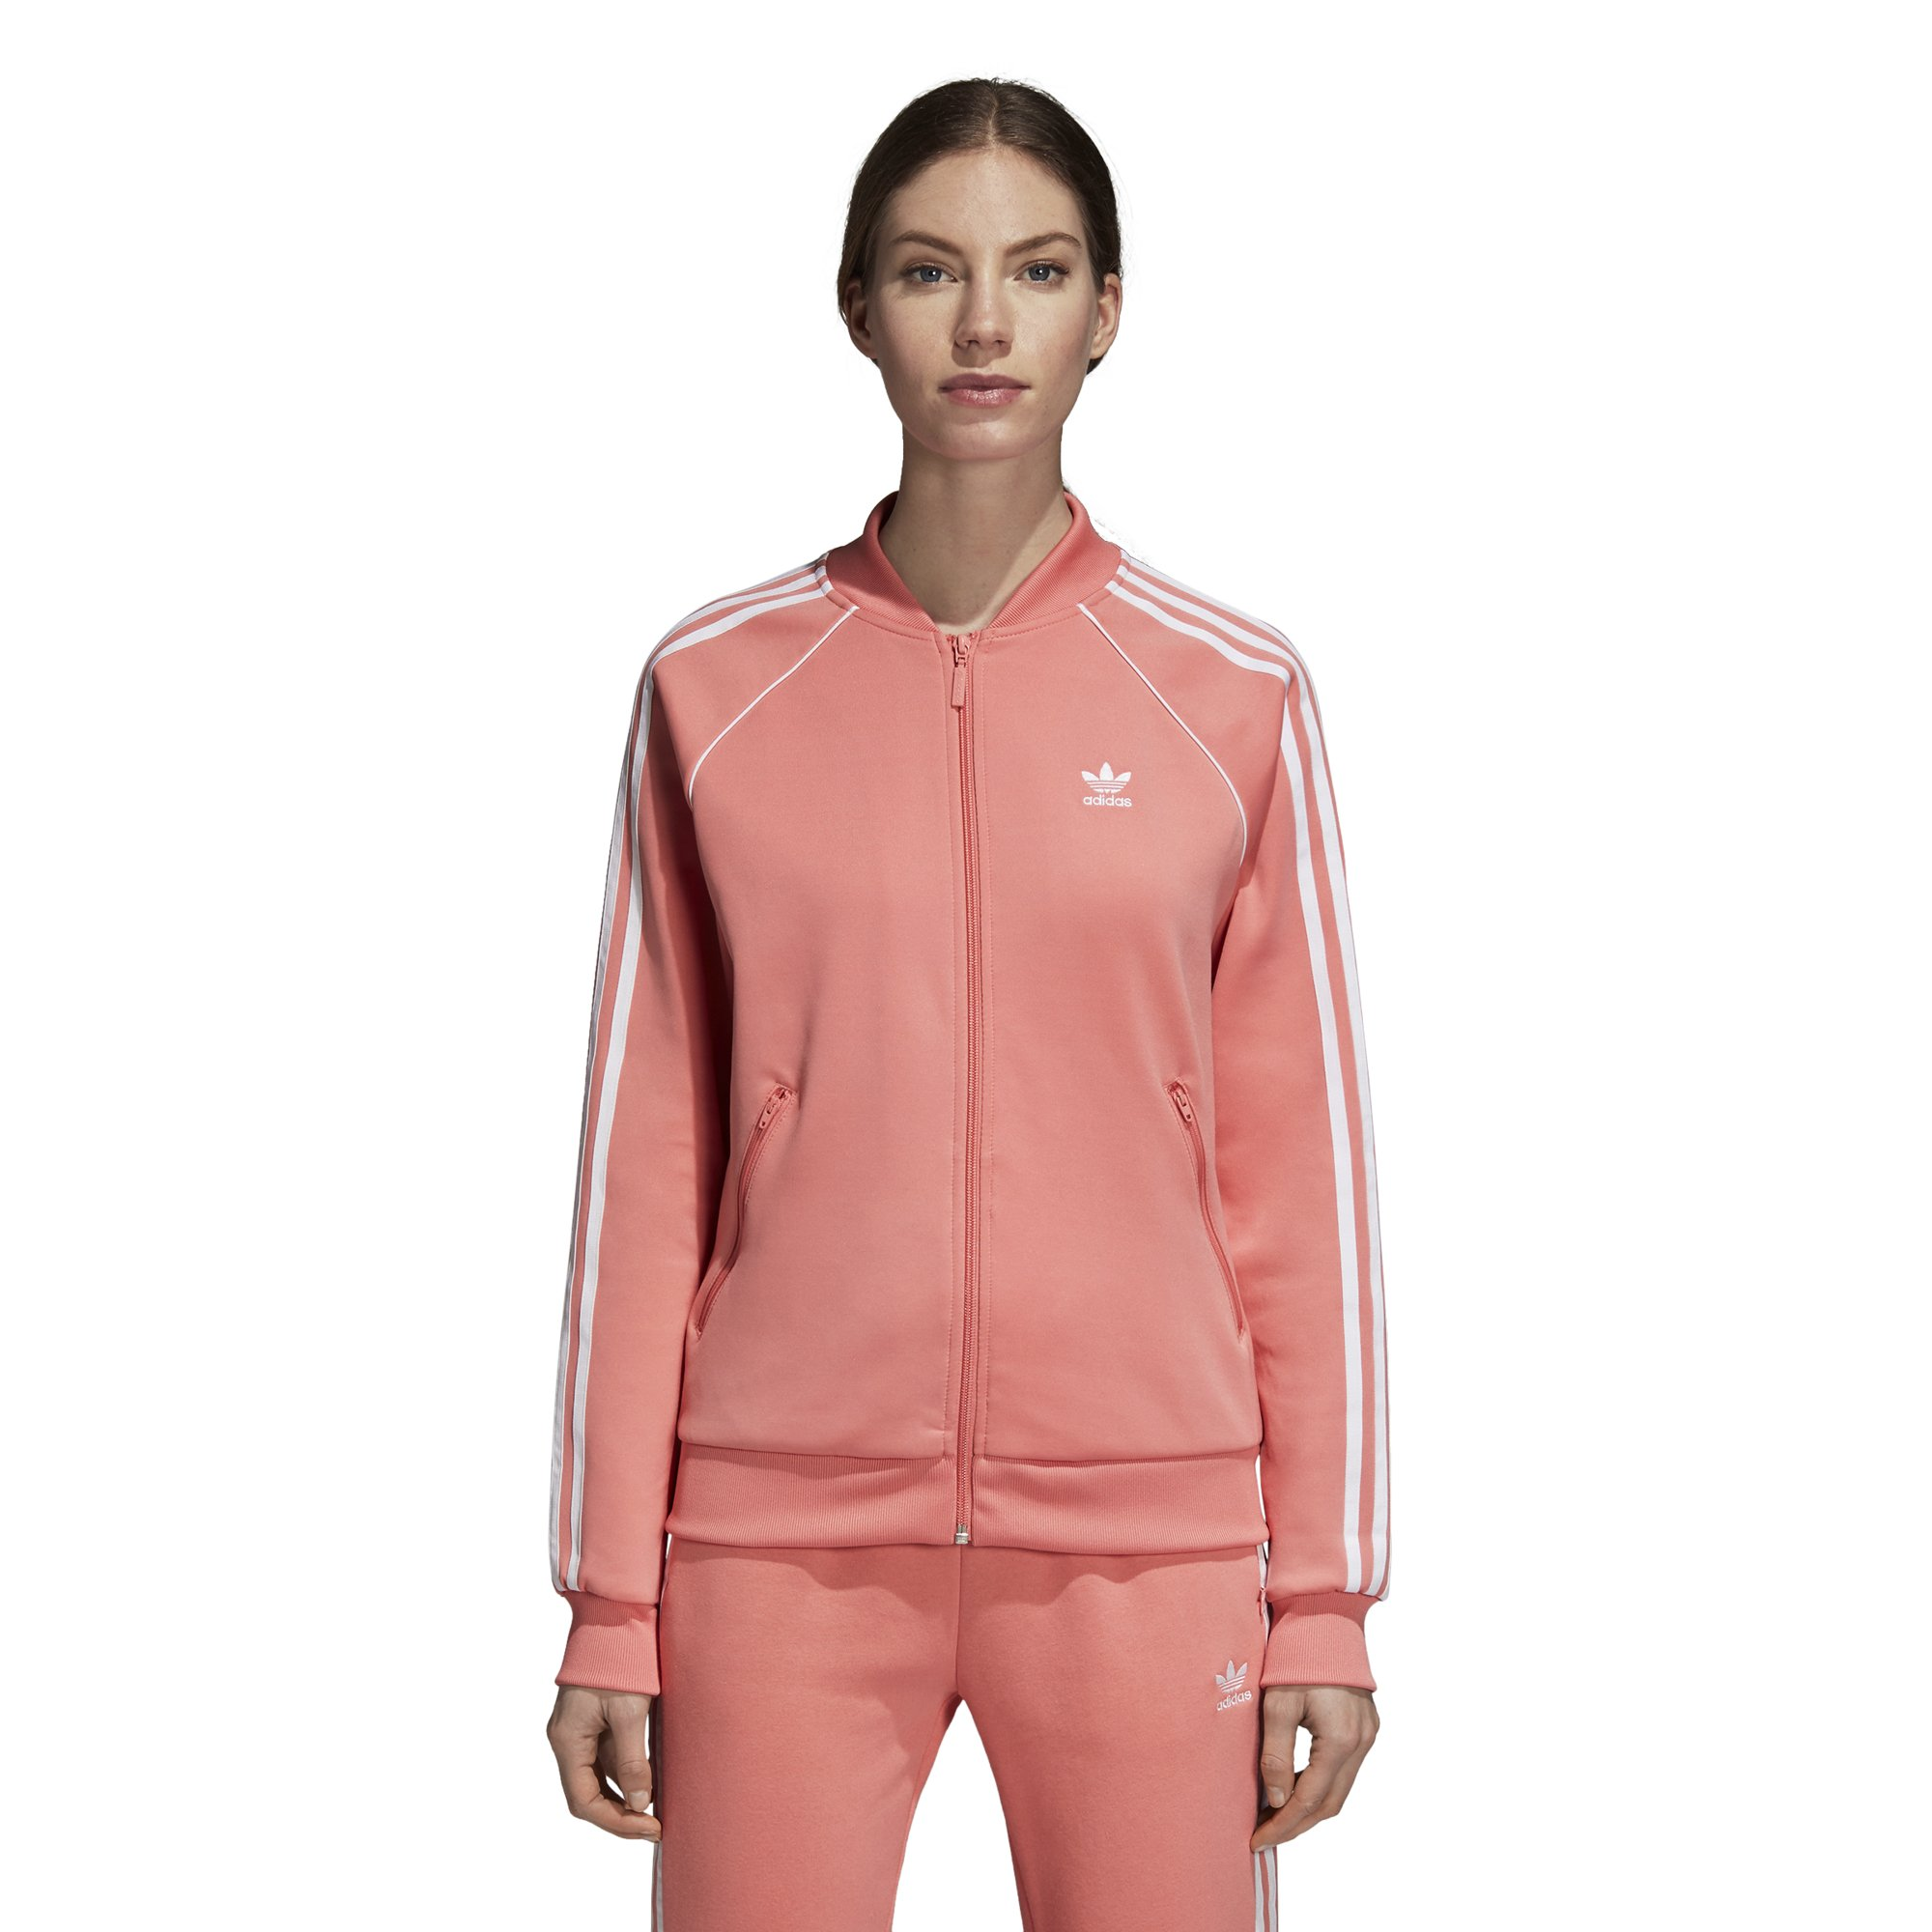 adidas Originals Women's Superstar Tracktop, Tactile Rose, L